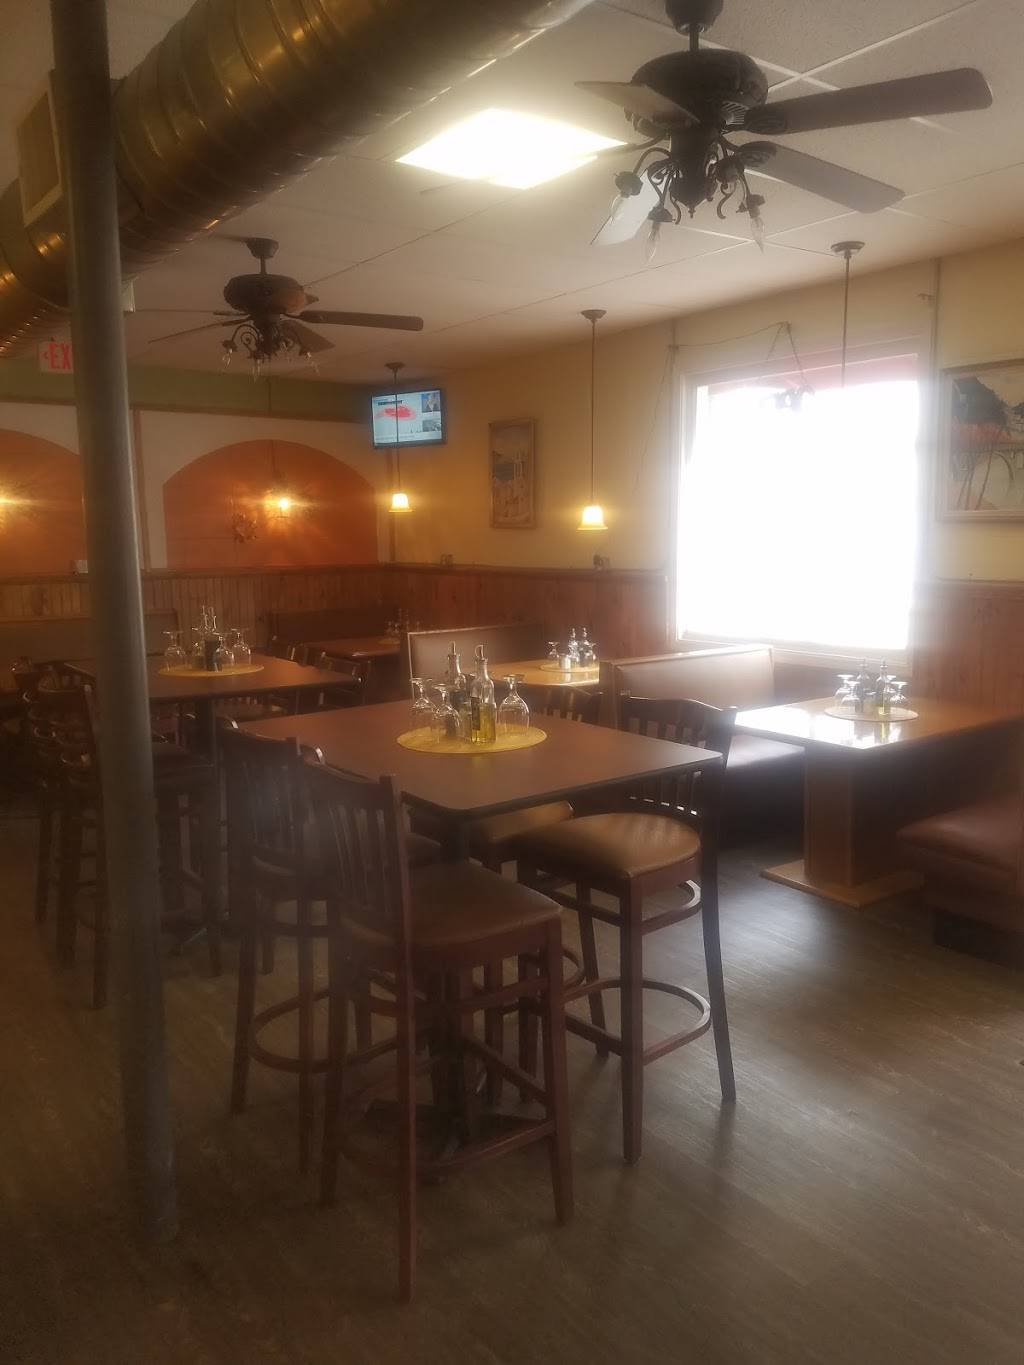 Nonnas place | meal takeaway | 60 Pleasant St, Concord, NH 03301, USA | 6032190527 OR +1 603-219-0527